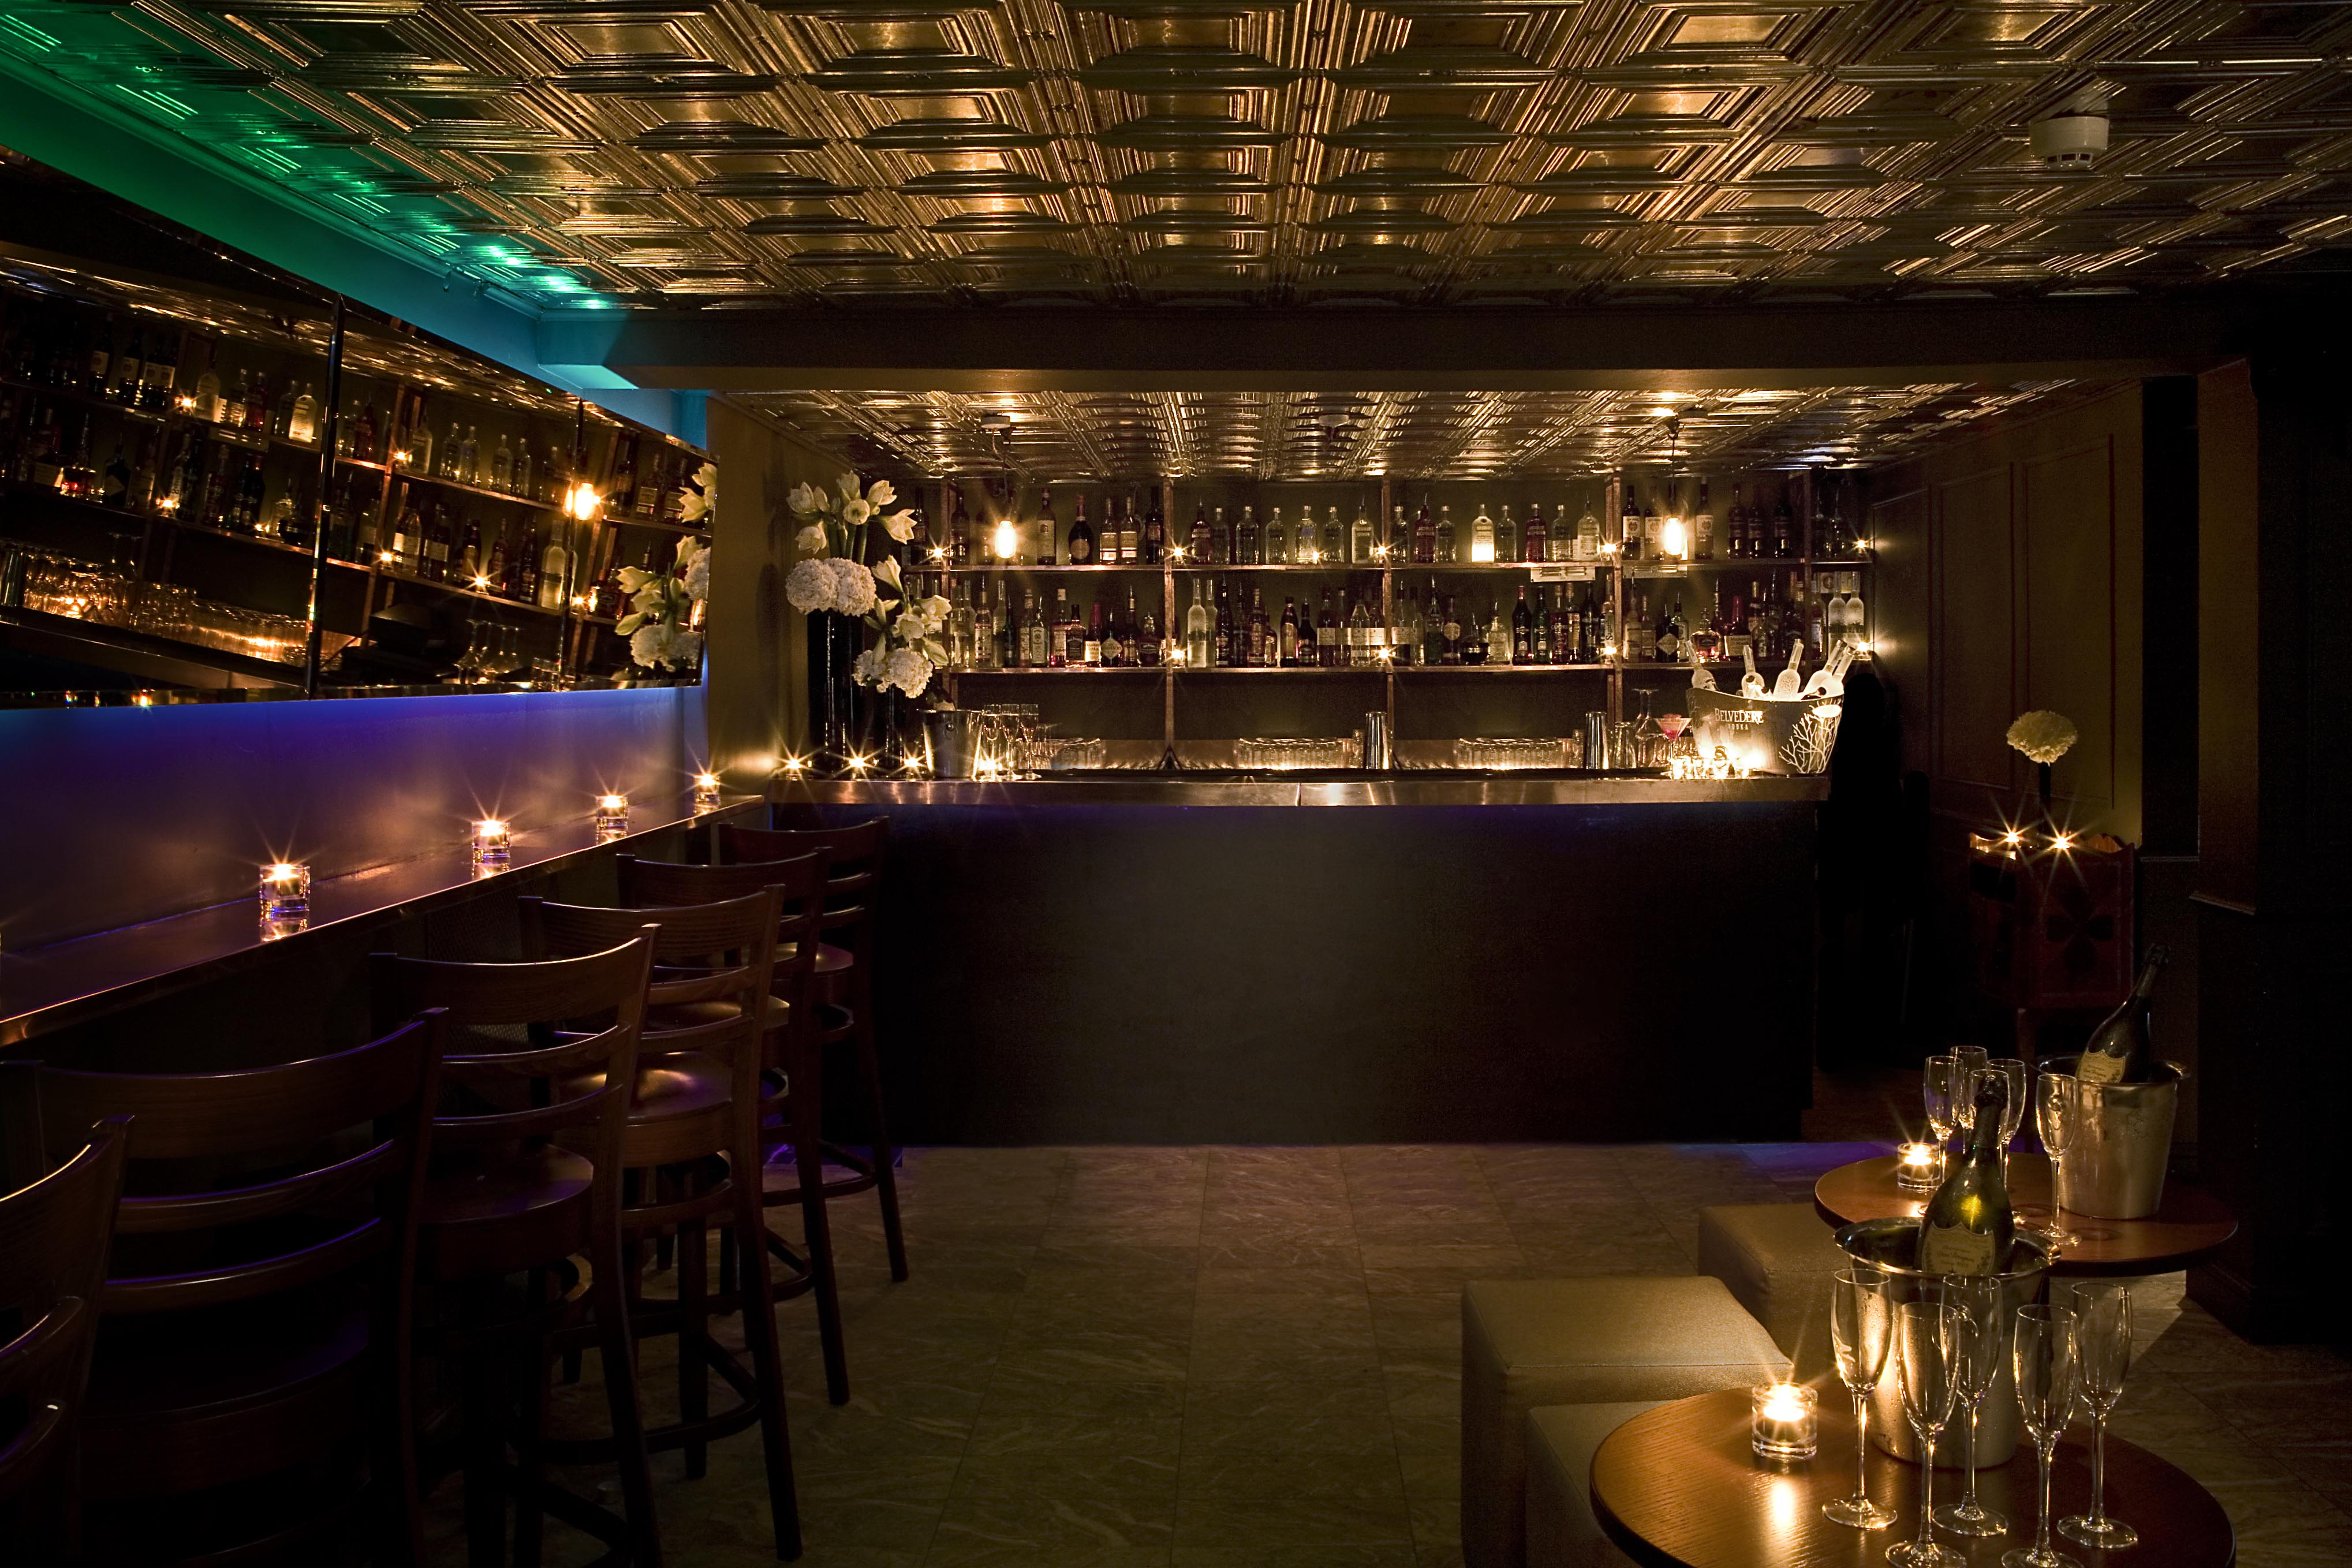 Barbarella Restaurant Bar And Nightclub Fulham Road Chelsea on Nightclub Interior Design